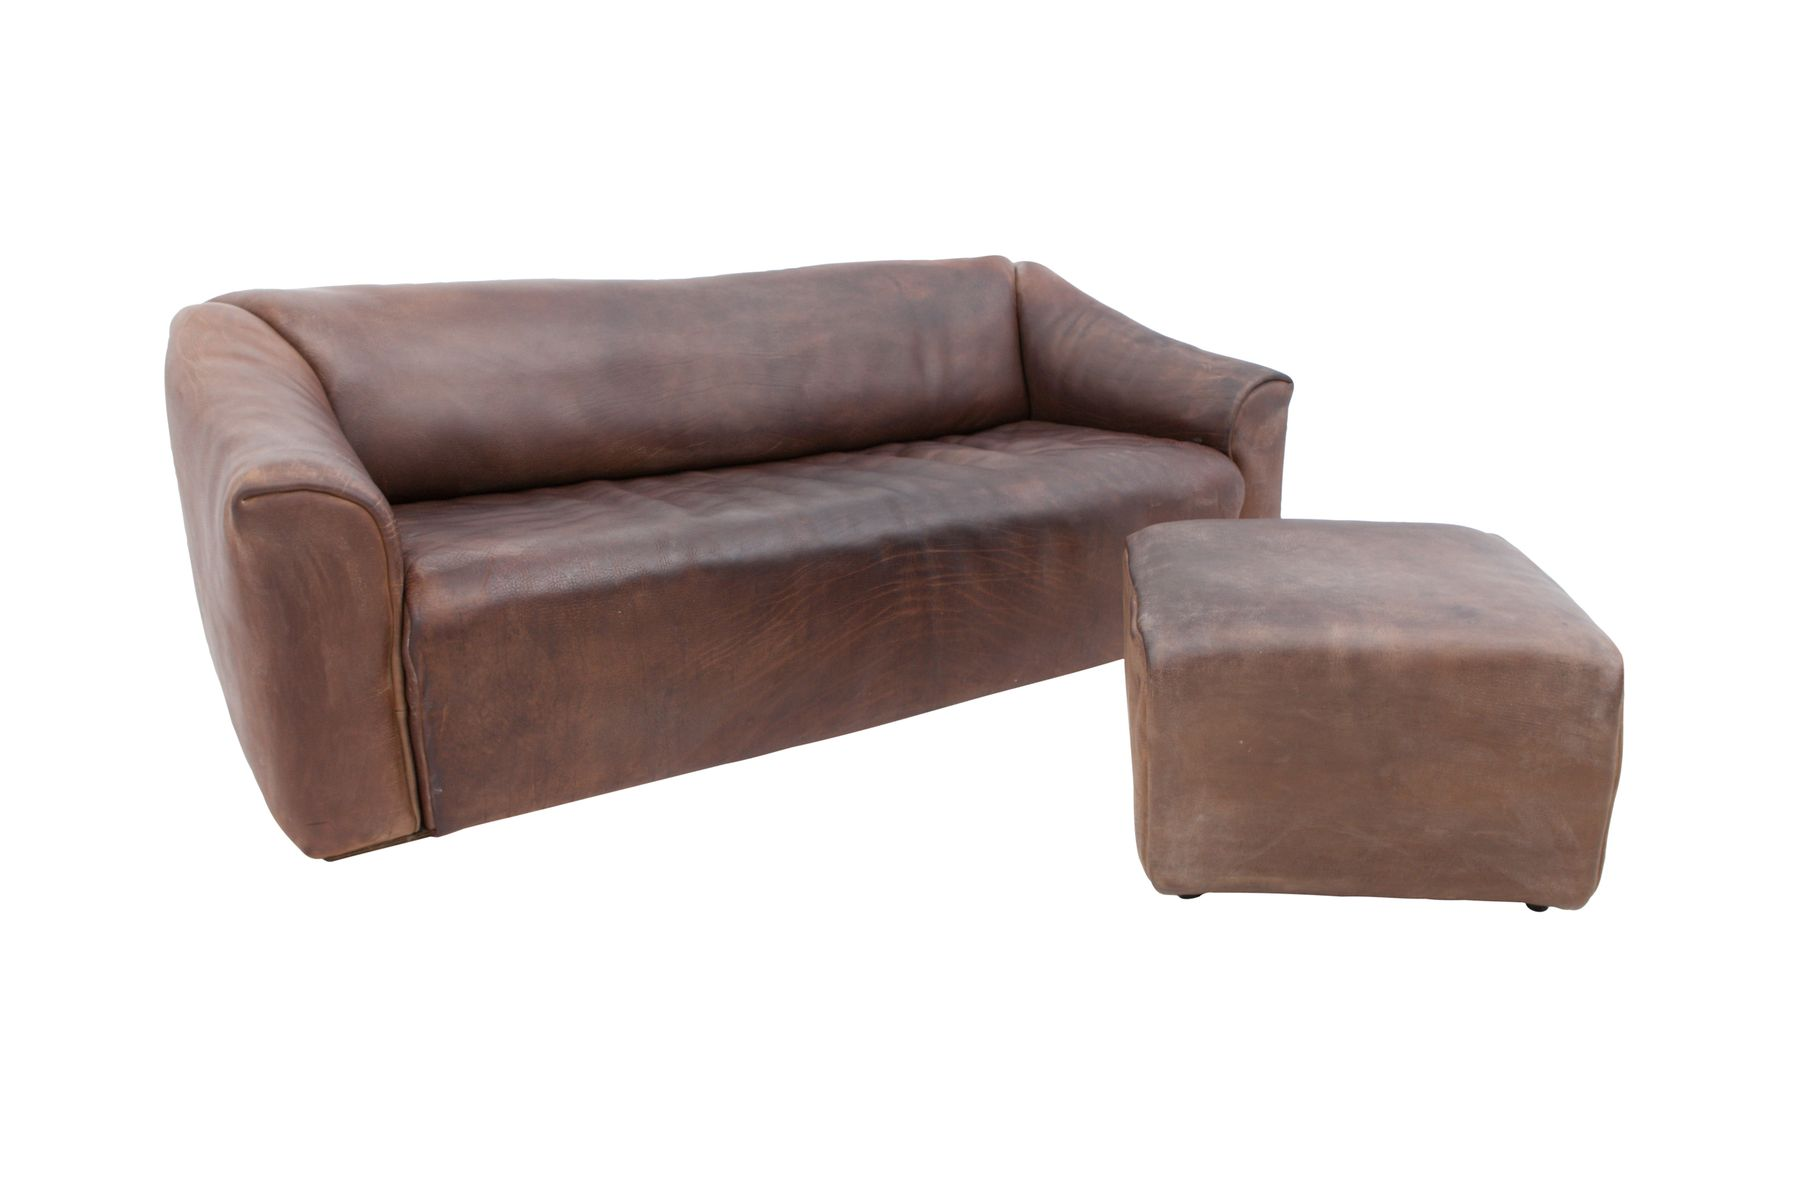 ds 47 leather sofa with ottoman from de sede 1970s for sale at pamono. Black Bedroom Furniture Sets. Home Design Ideas